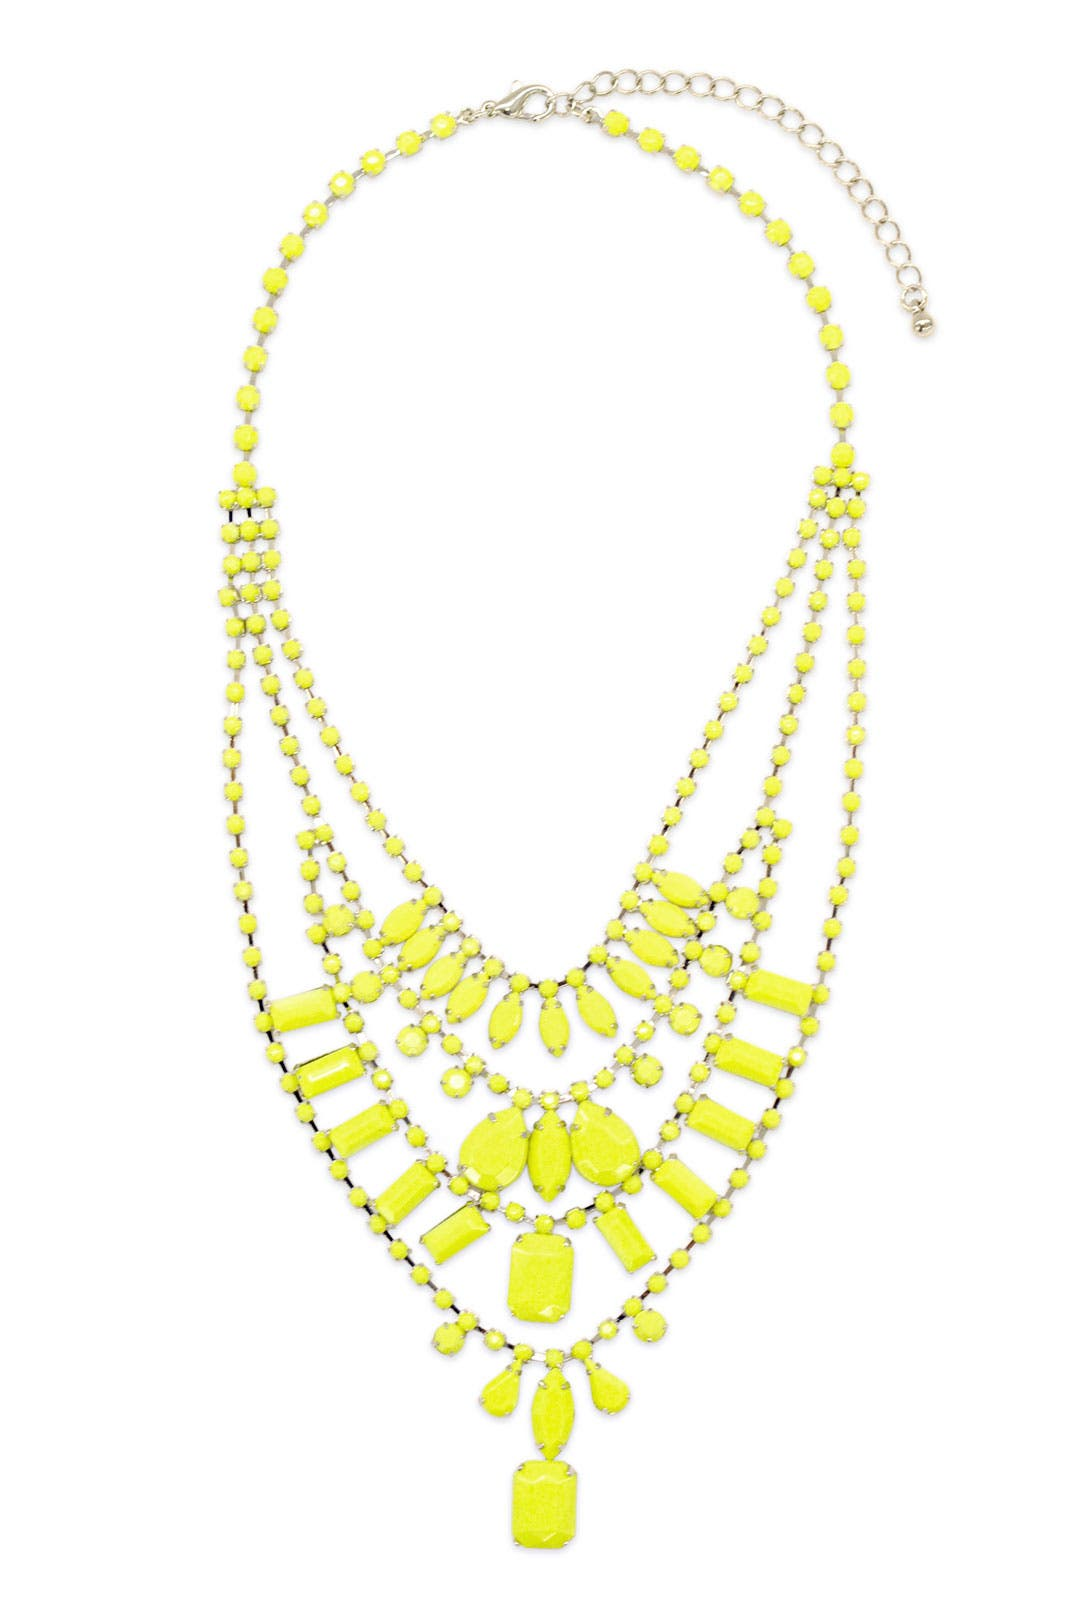 Neon Yellow Lights Necklace by Adia Kibur